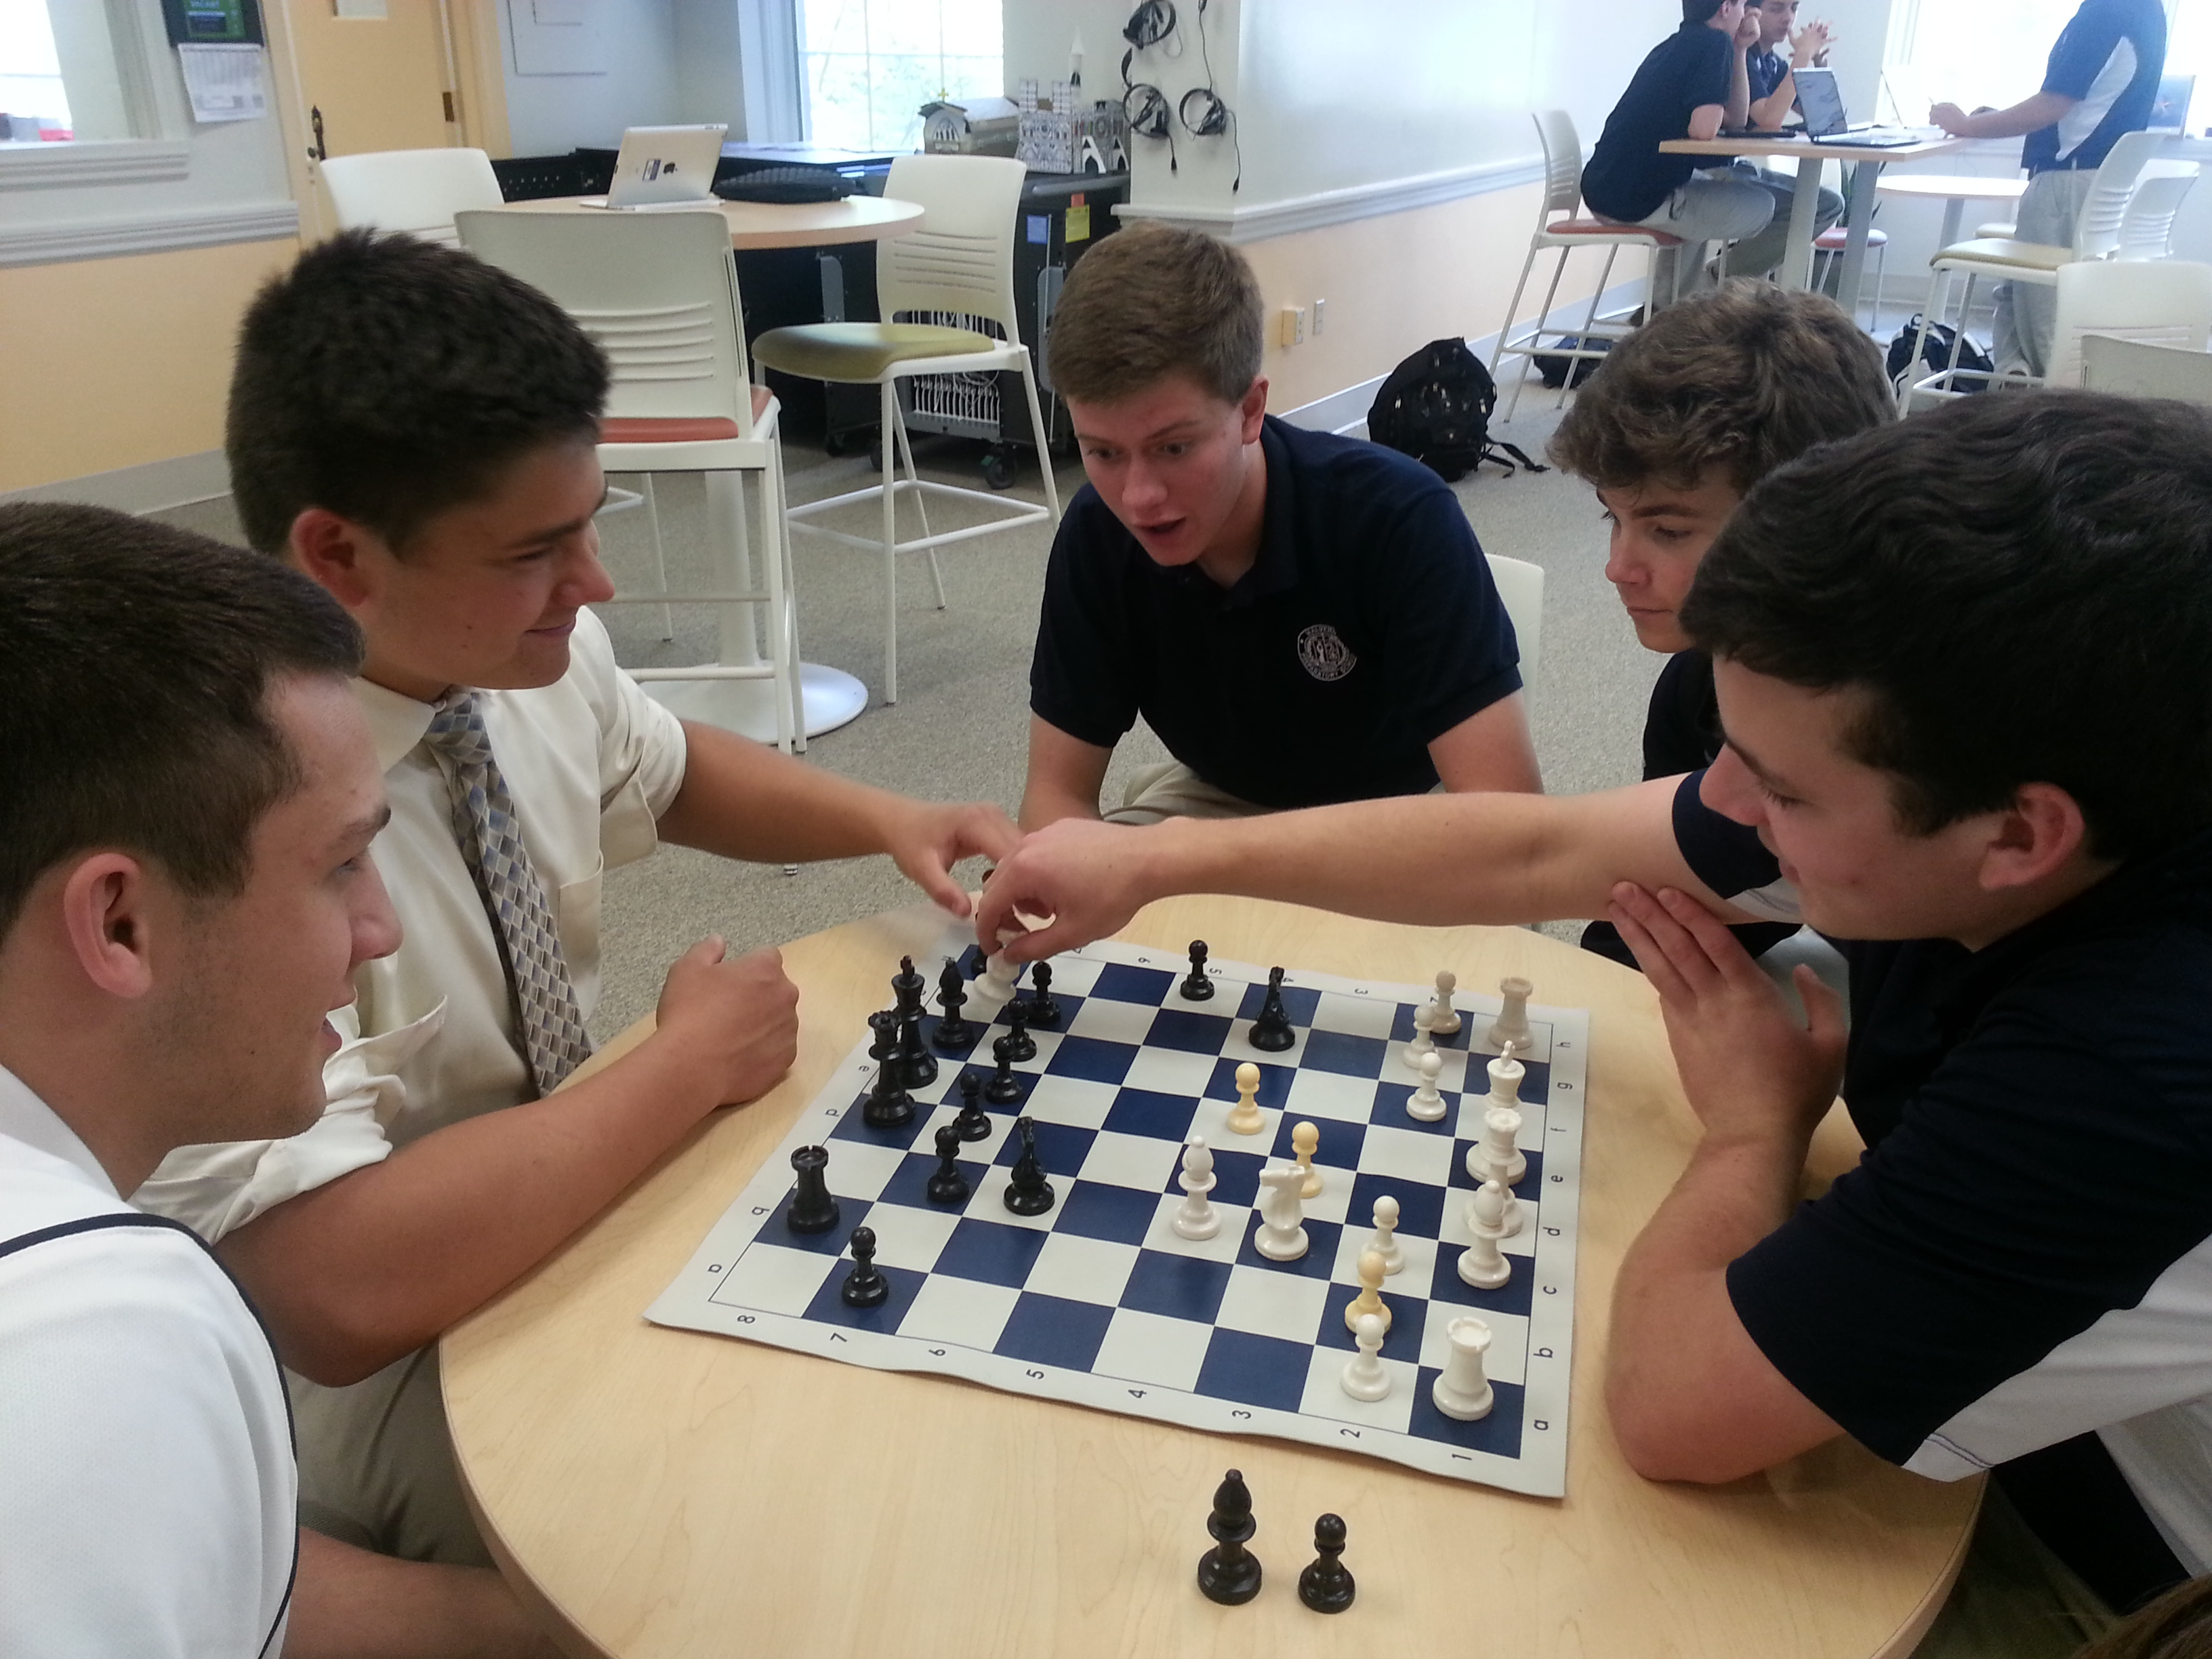 Underclassmen in fierce chess competition / M. Lanetti